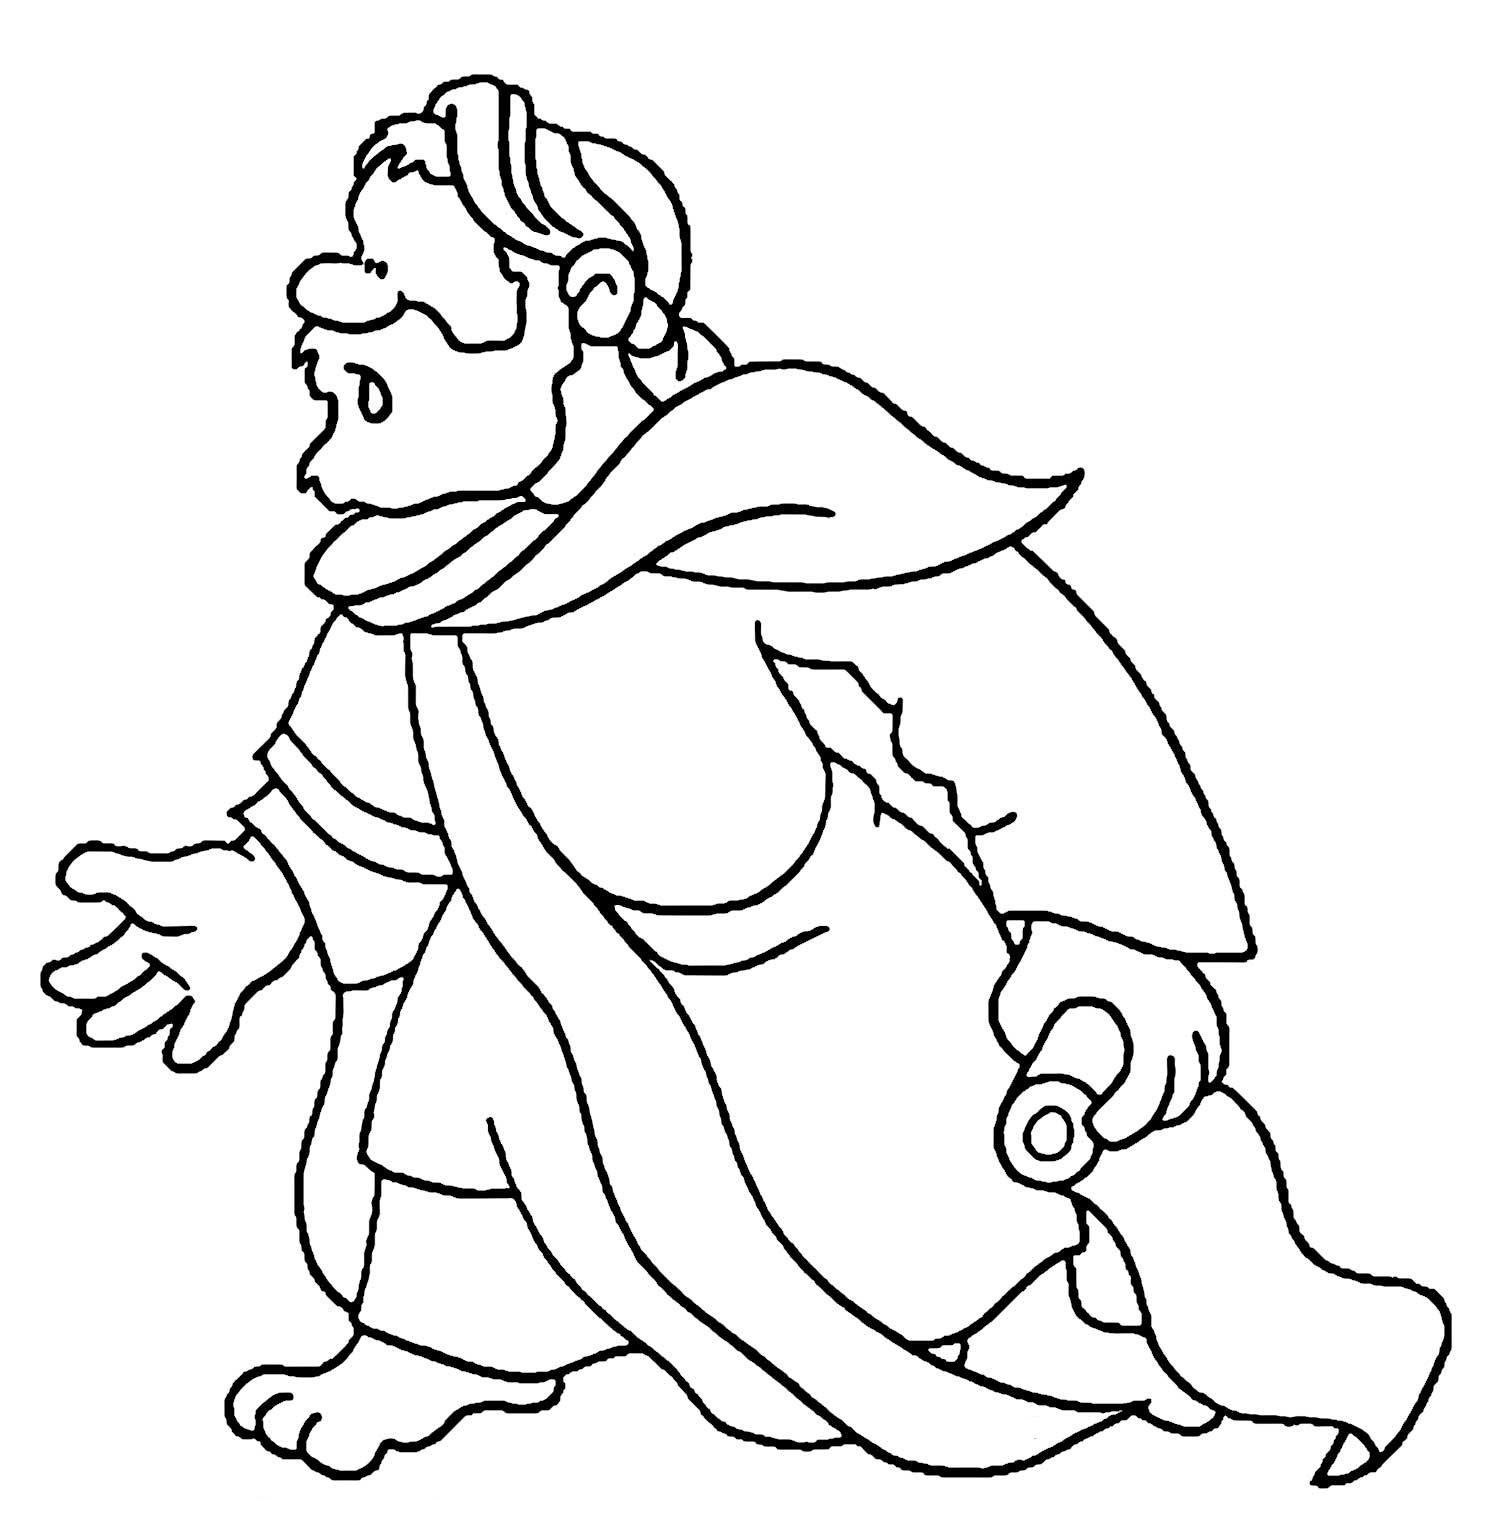 paul coloring pages paul preached in athens coloring page on sunday school zone coloring paul pages